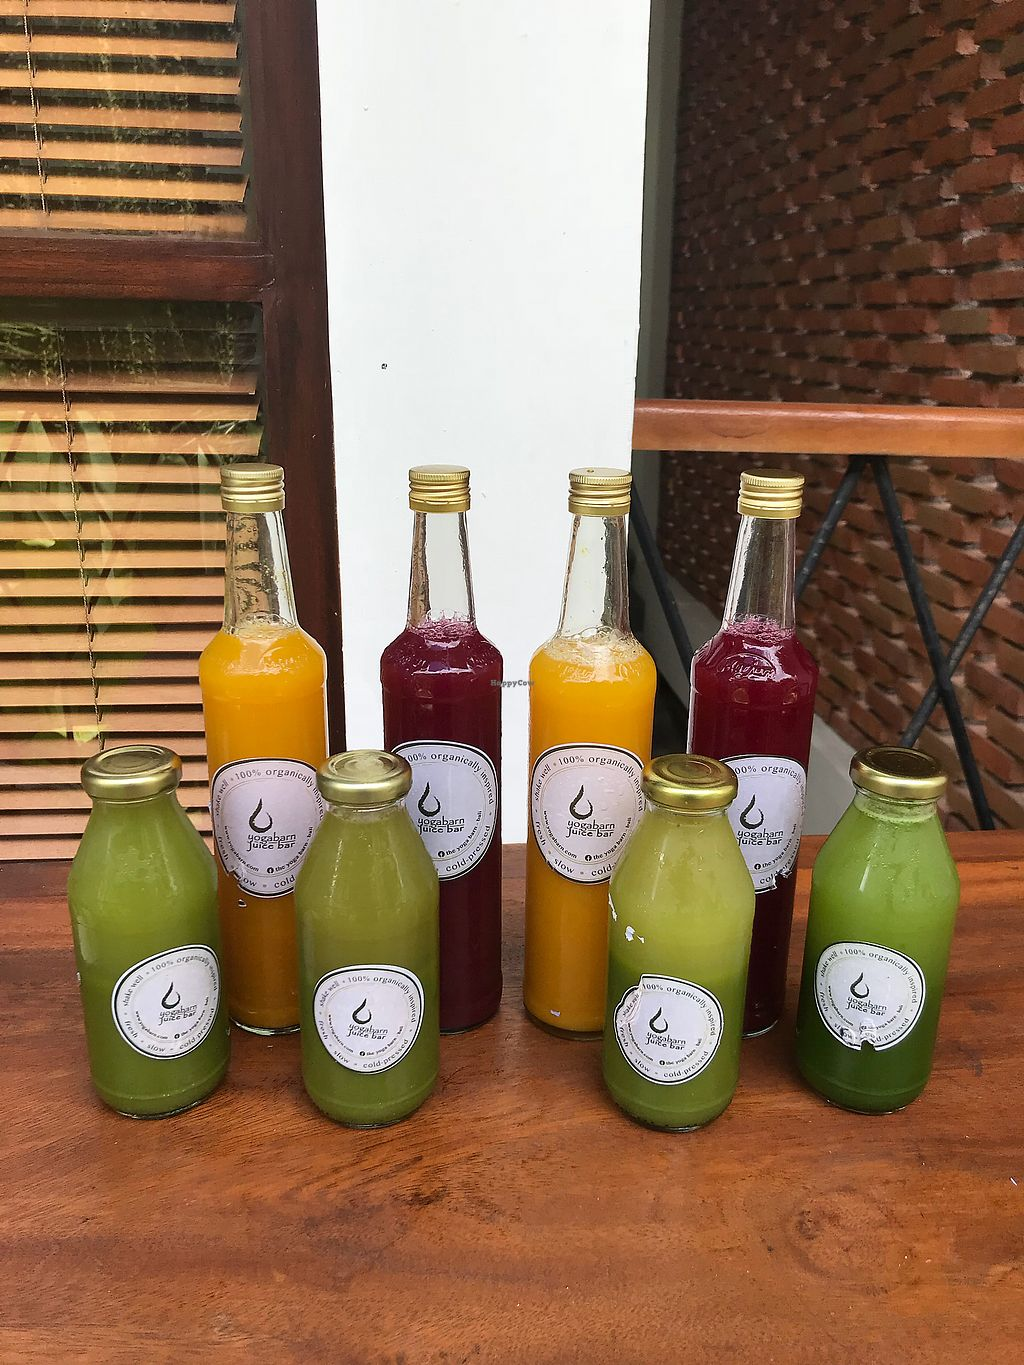 "Photo of The Garden Kafe at The Yoga Barn  by <a href=""/members/profile/LolaNachtigall"">LolaNachtigall</a> <br/>Fresh Juices from their Juice Bar <br/> March 16, 2018  - <a href='/contact/abuse/image/39987/371234'>Report</a>"